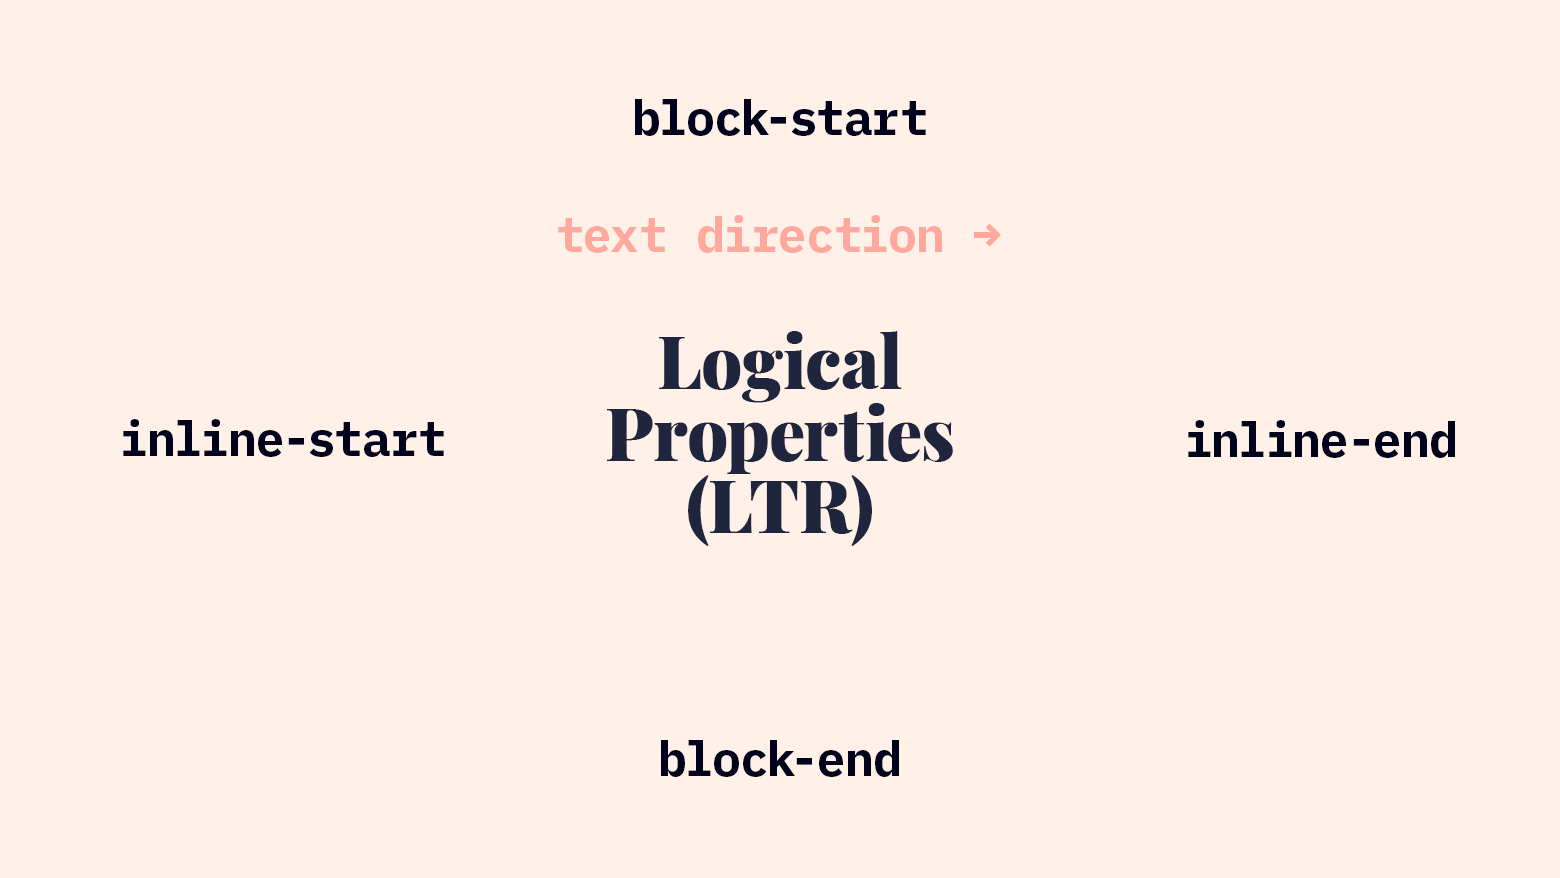 Logical Properties in LTR Writing Mode